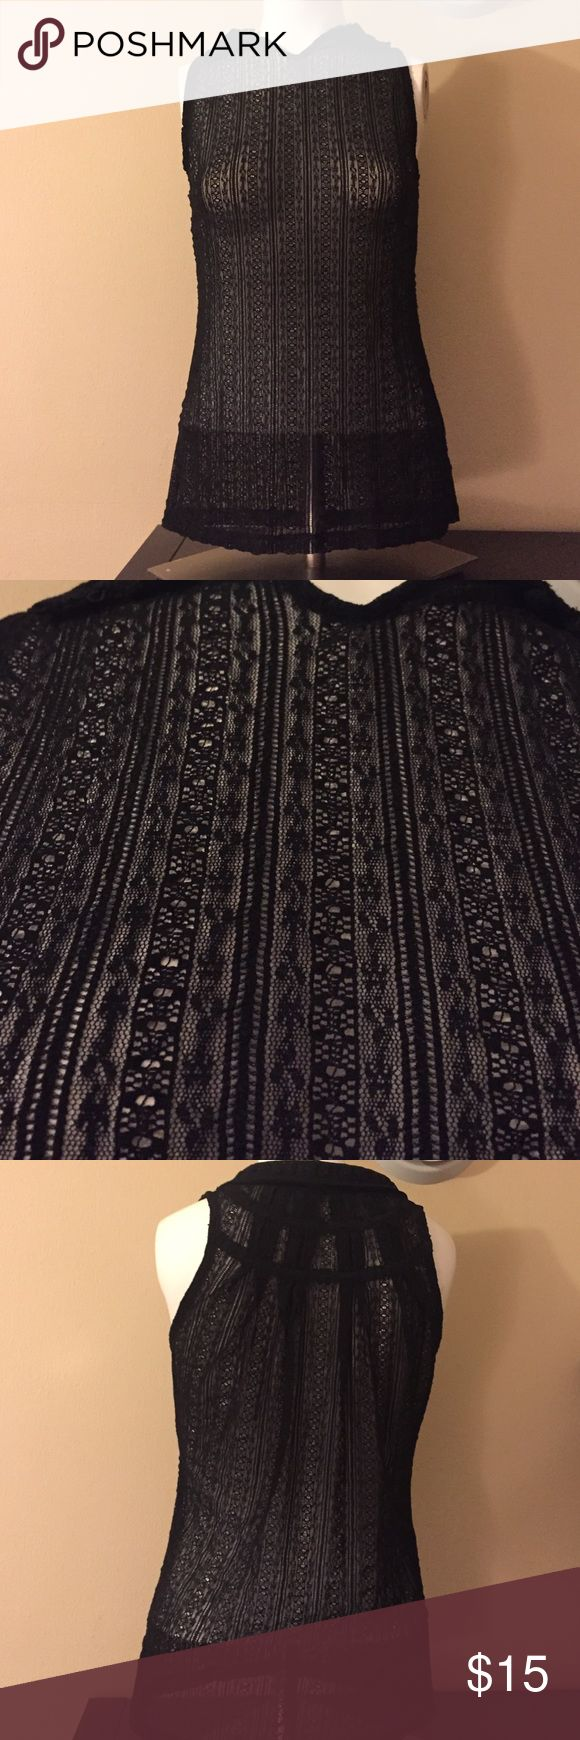 Black See through Tank Top Preowned and in beautiful condition. Size S. See through material. Sexy top The Limited Tops Tank Tops